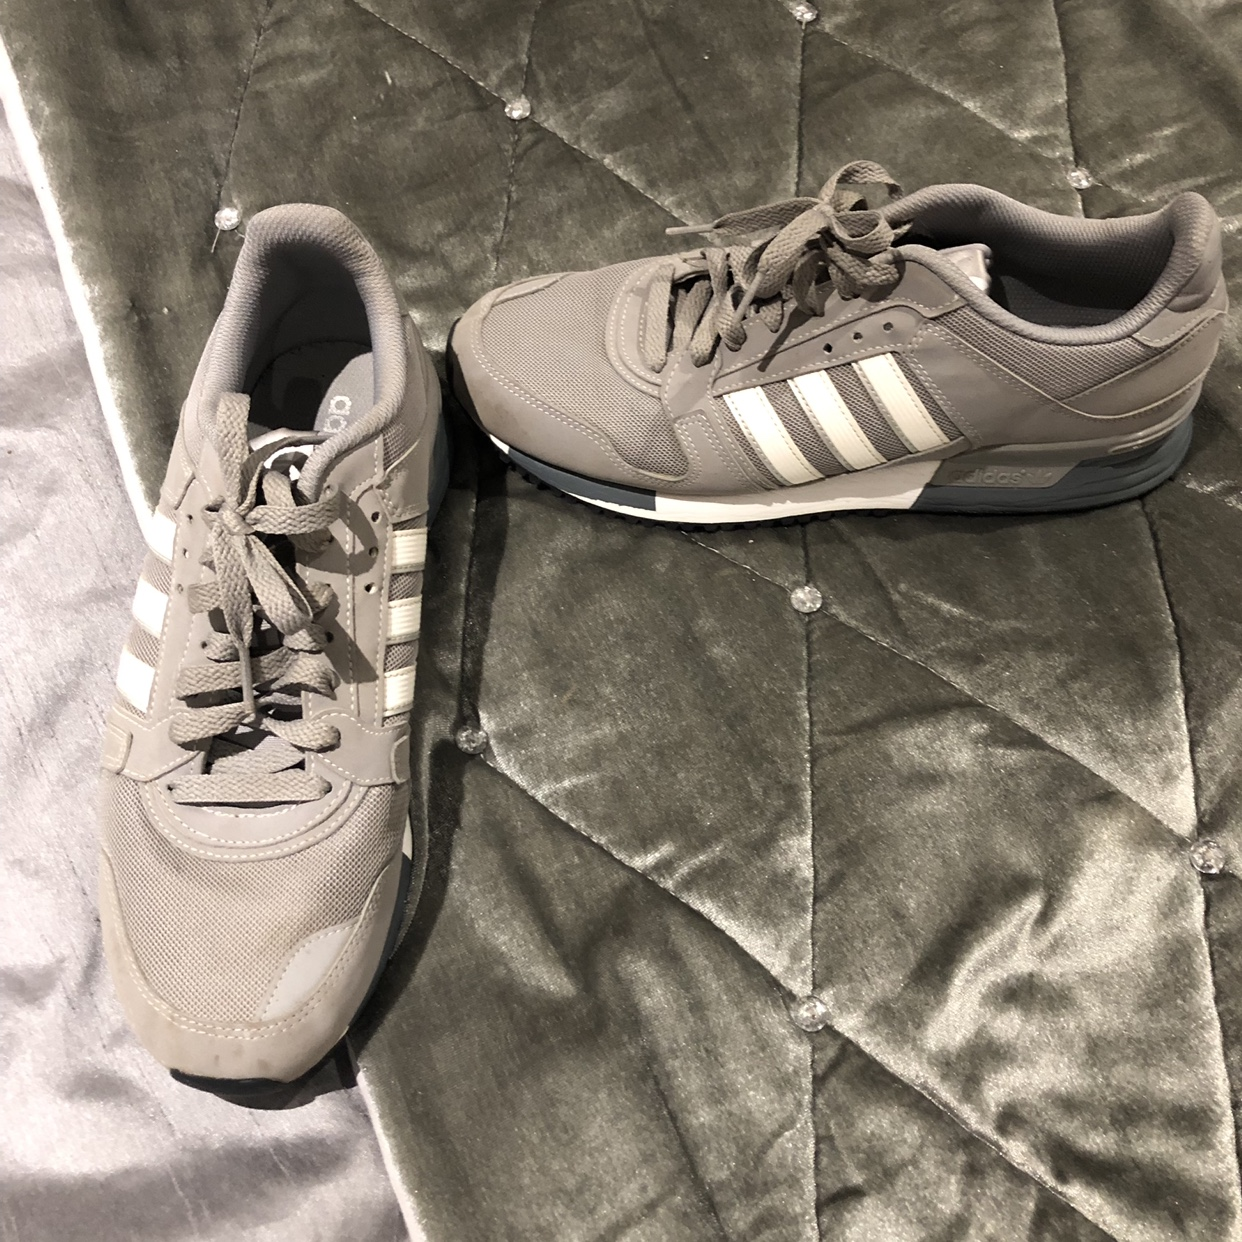 Men's Adidas Trainers size 9 #mens